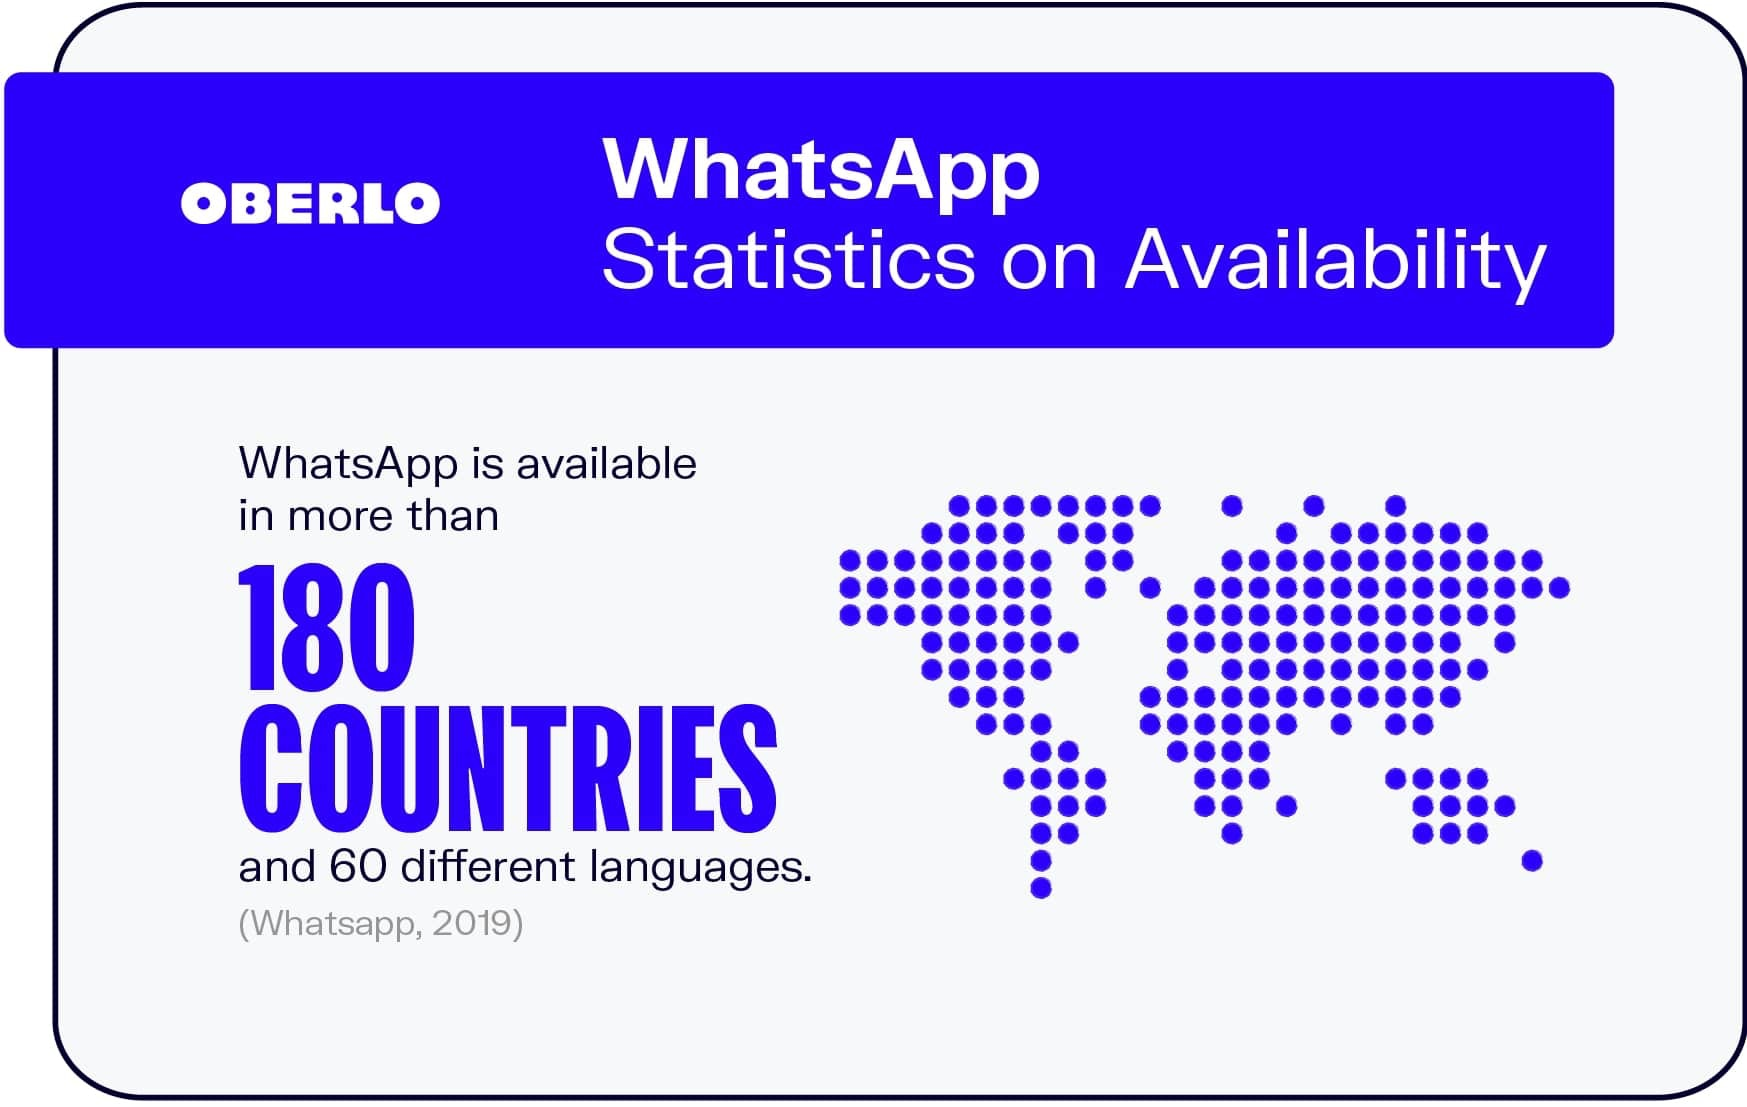 WhatsApp Statistics on Availability